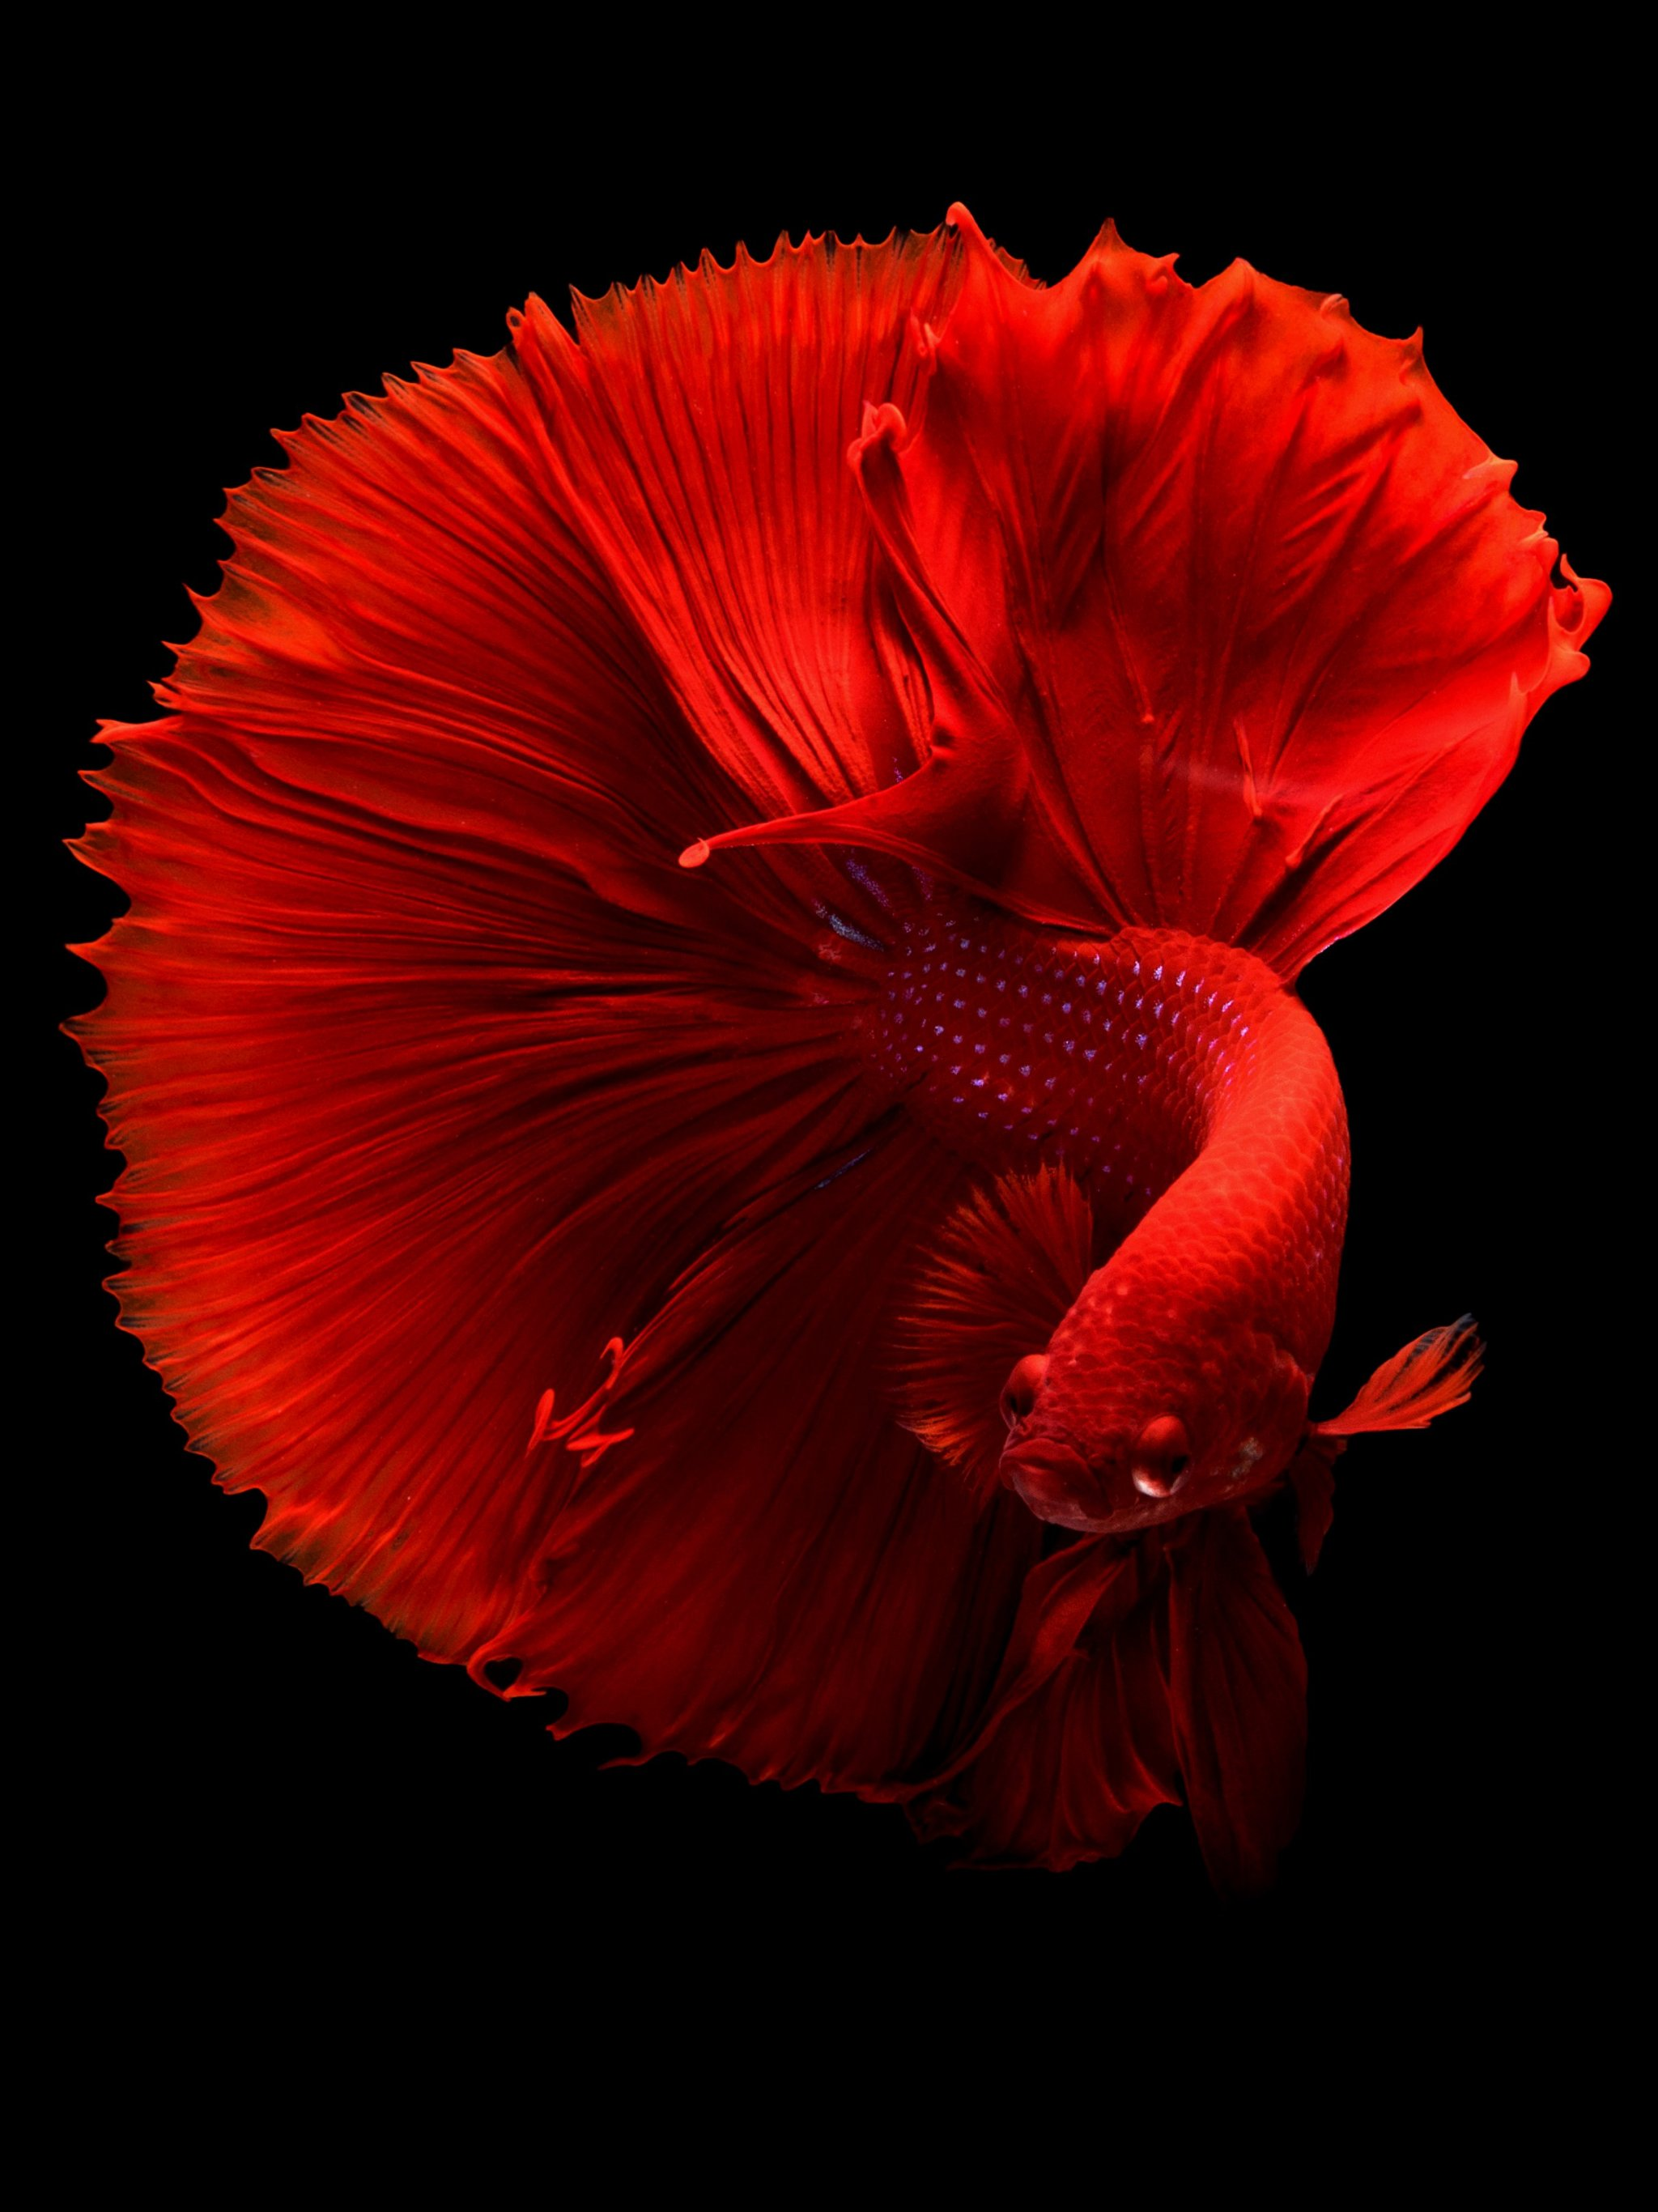 Siamese Fighting Fish Wallpaper Iphone Android Desktop Backgrounds